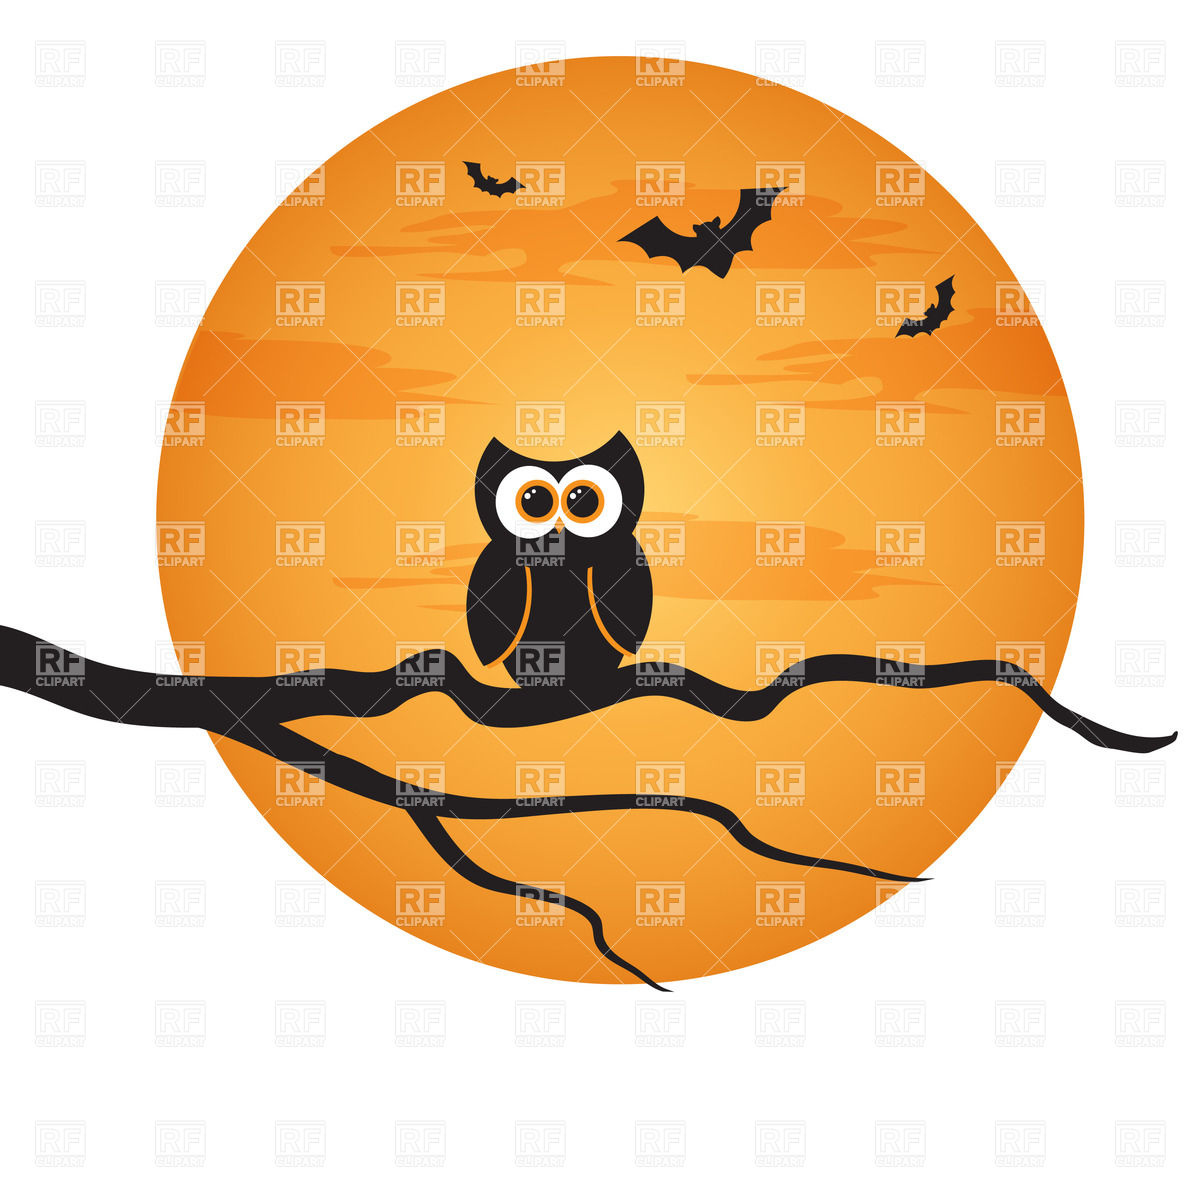 Harvest Moon clipart haloween Panda Clipart ego%20clipart Images Owl